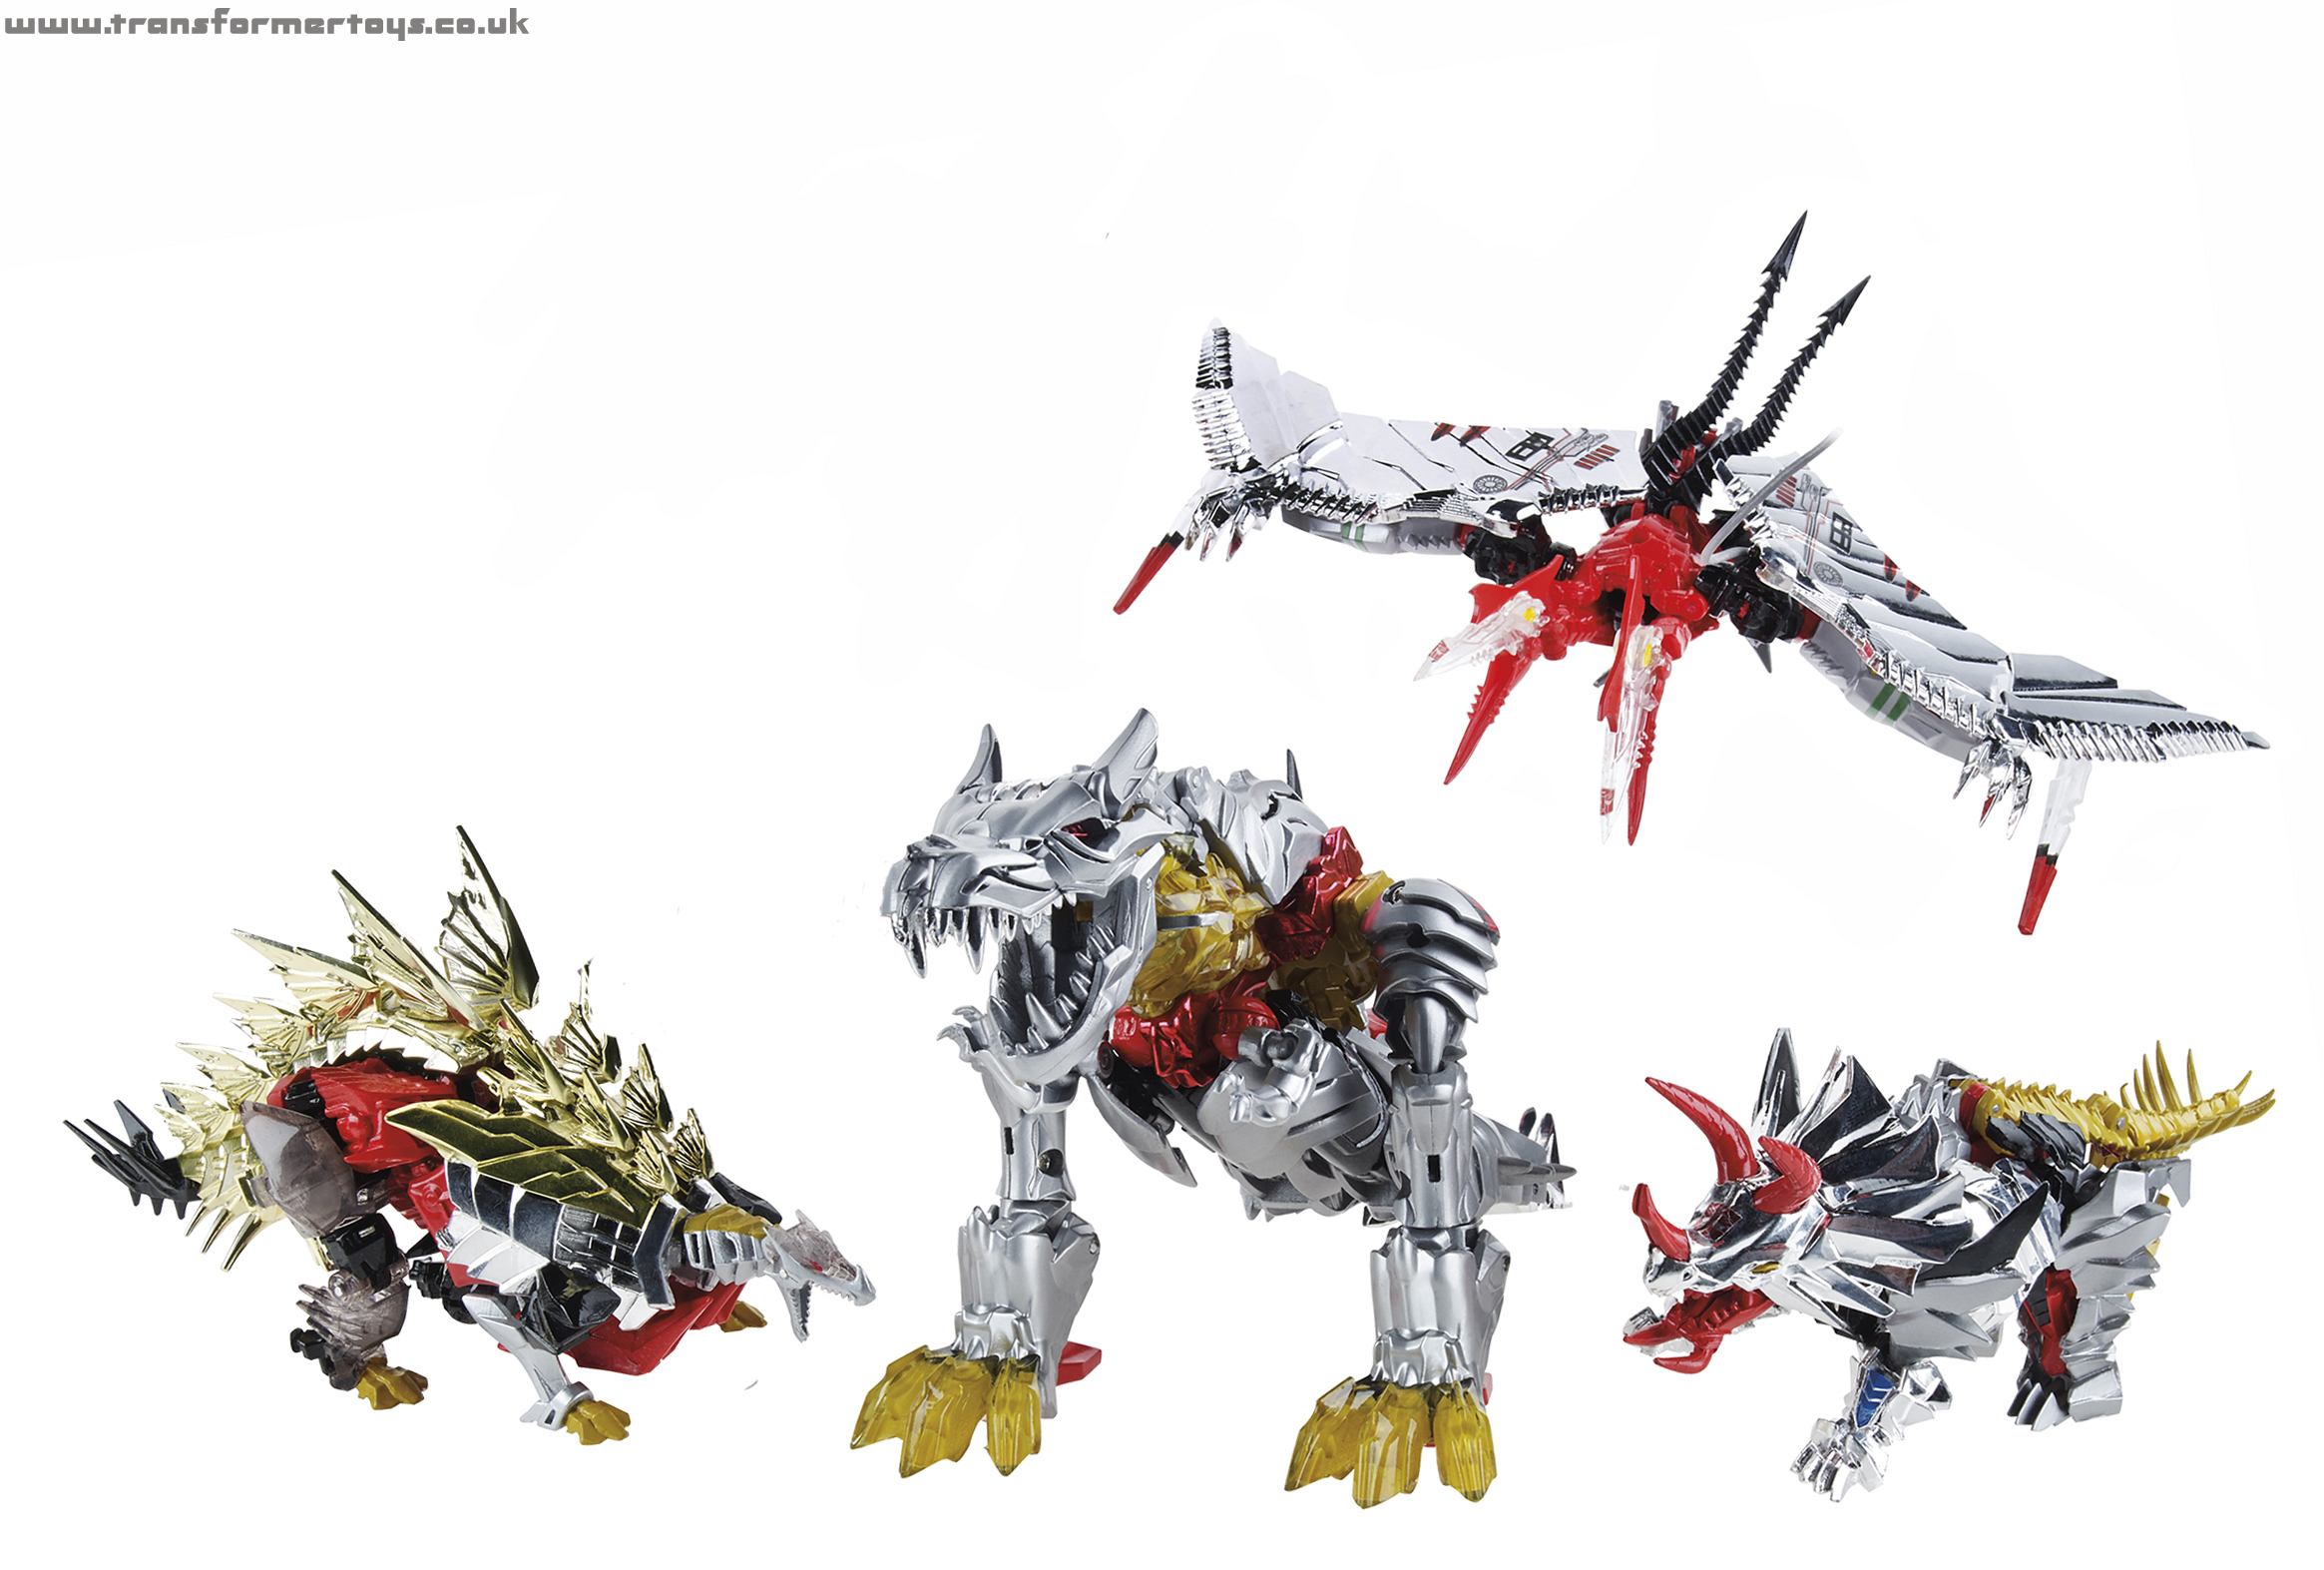 Transformers Two Toys 73